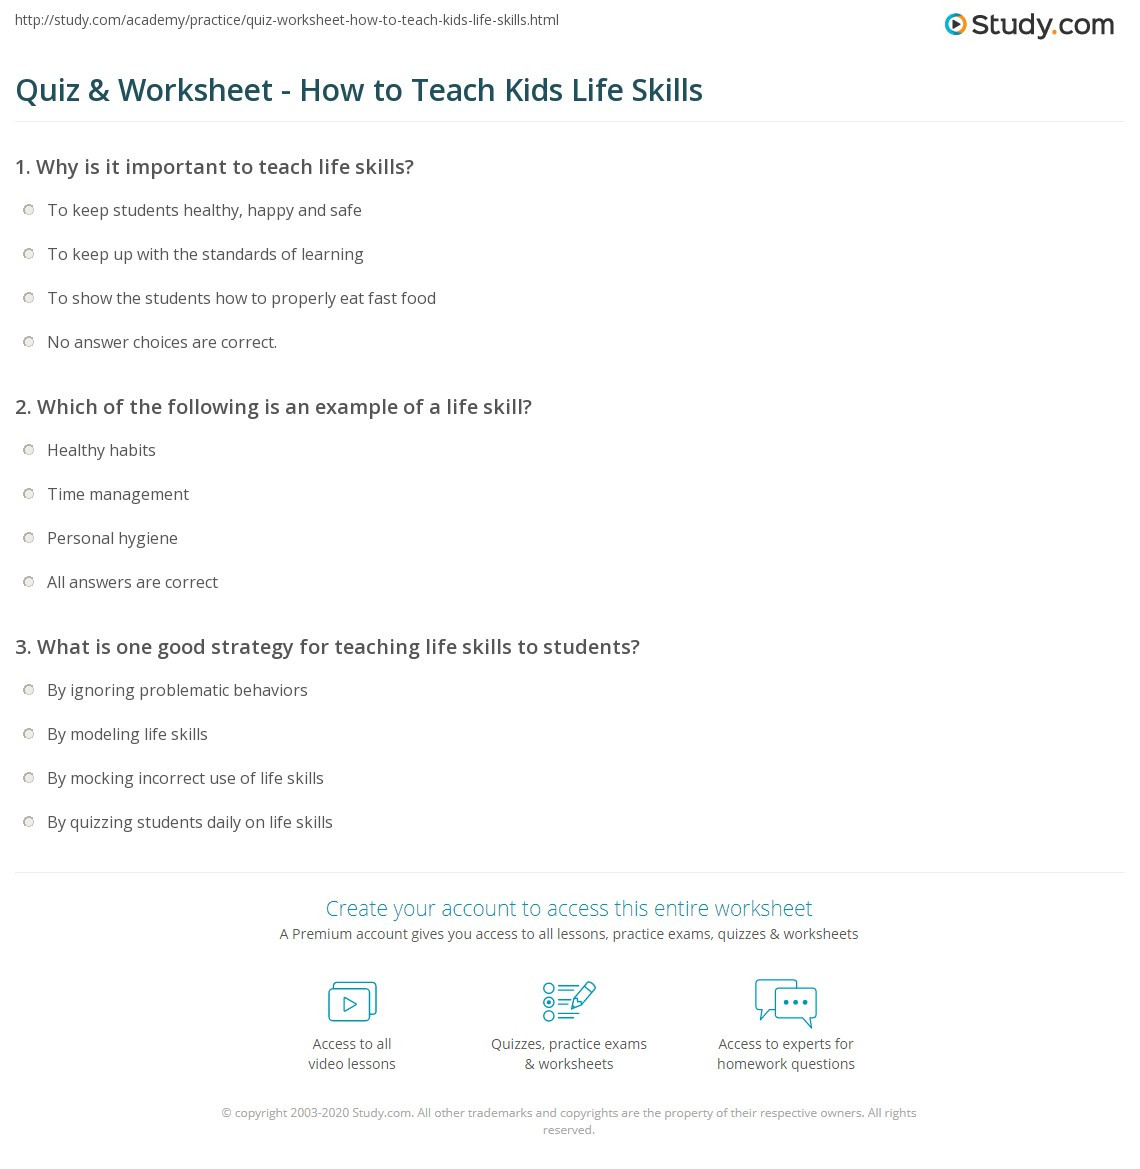 Printable Life Skills Worksheets Quiz & Worksheet How to Teach Kids Life Skills